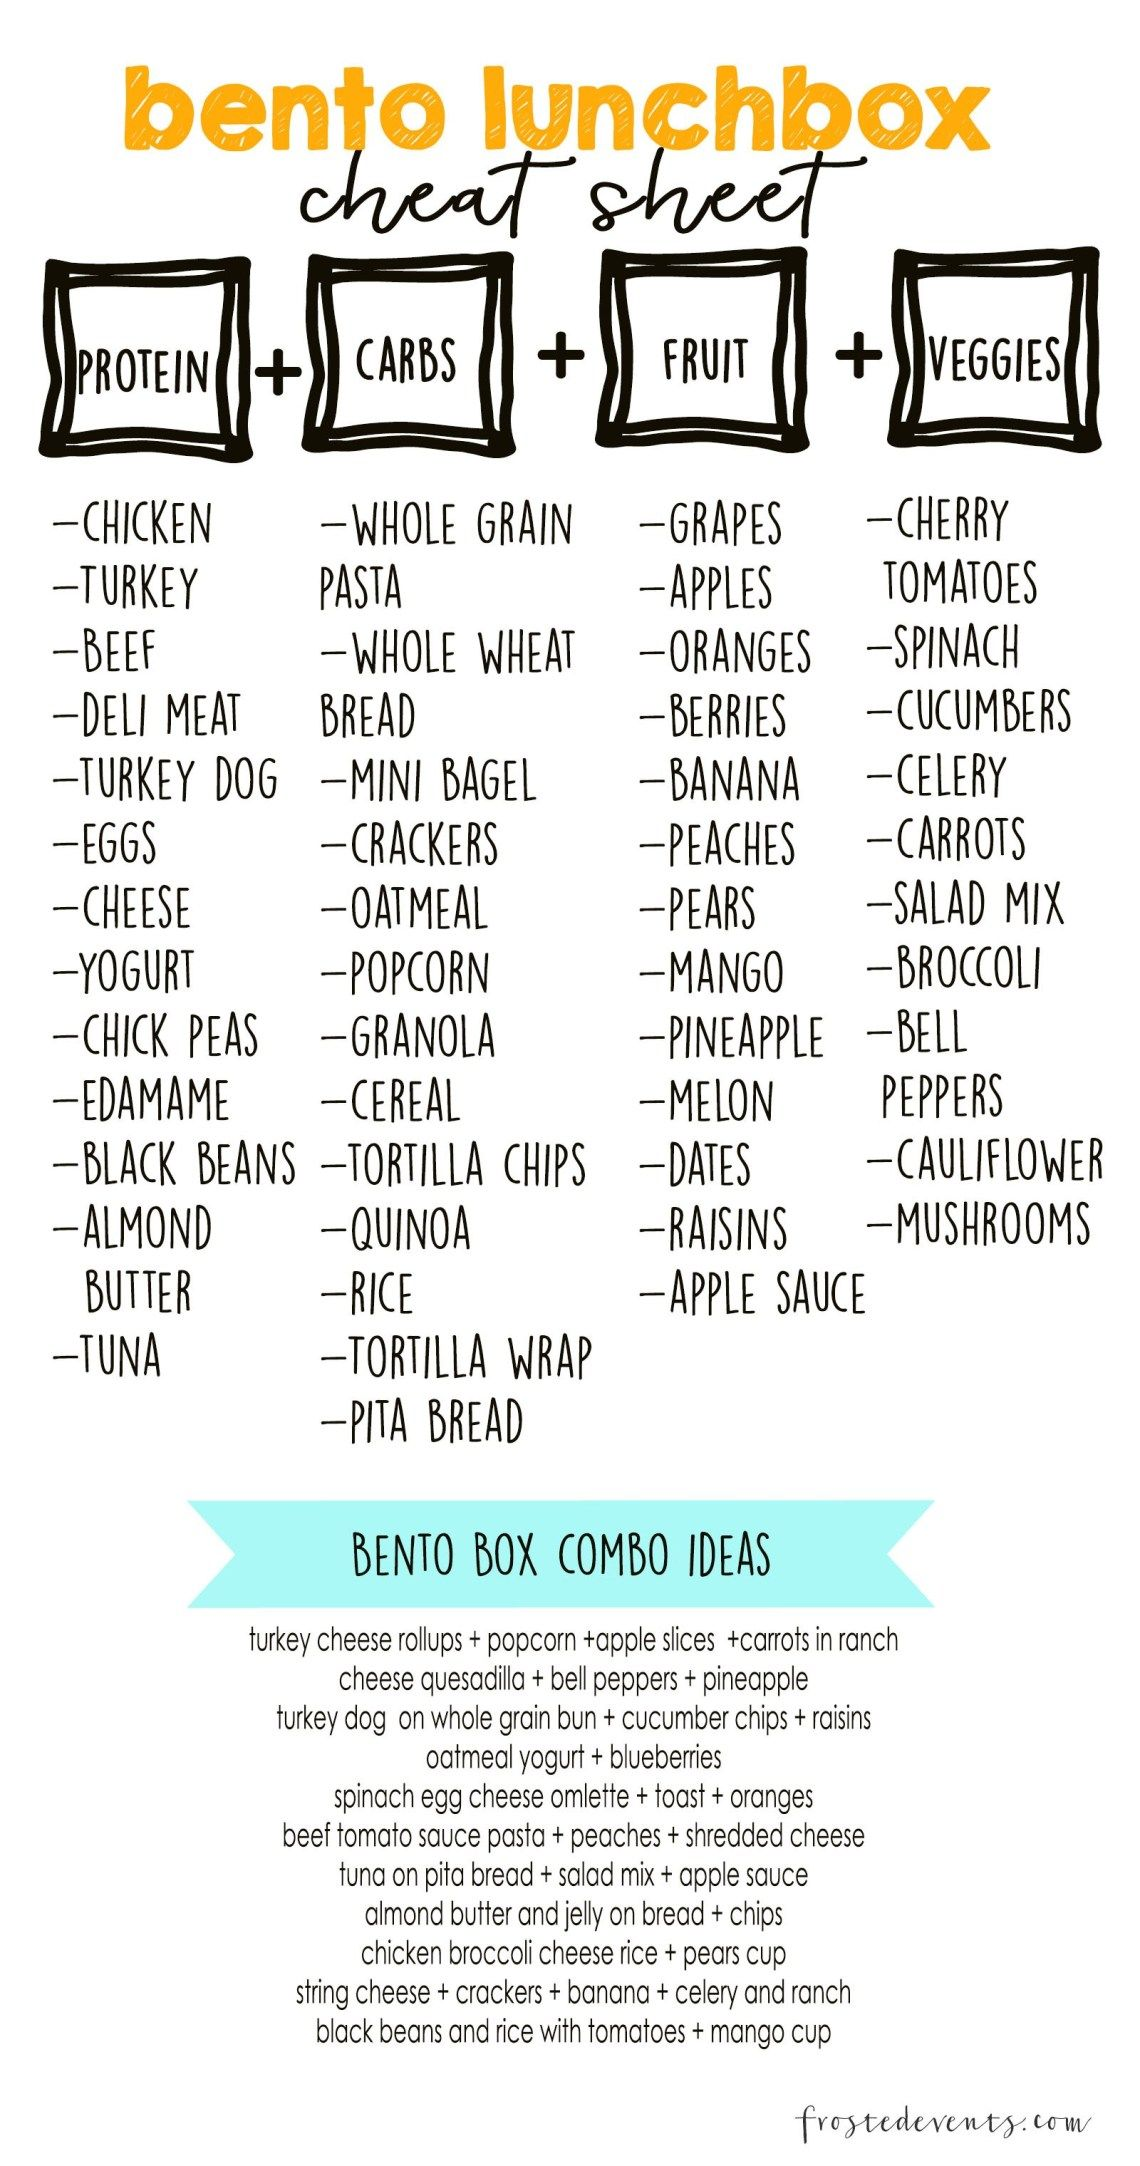 Bento Box Lunch Ideas + Cheat Sheet #healthylunches